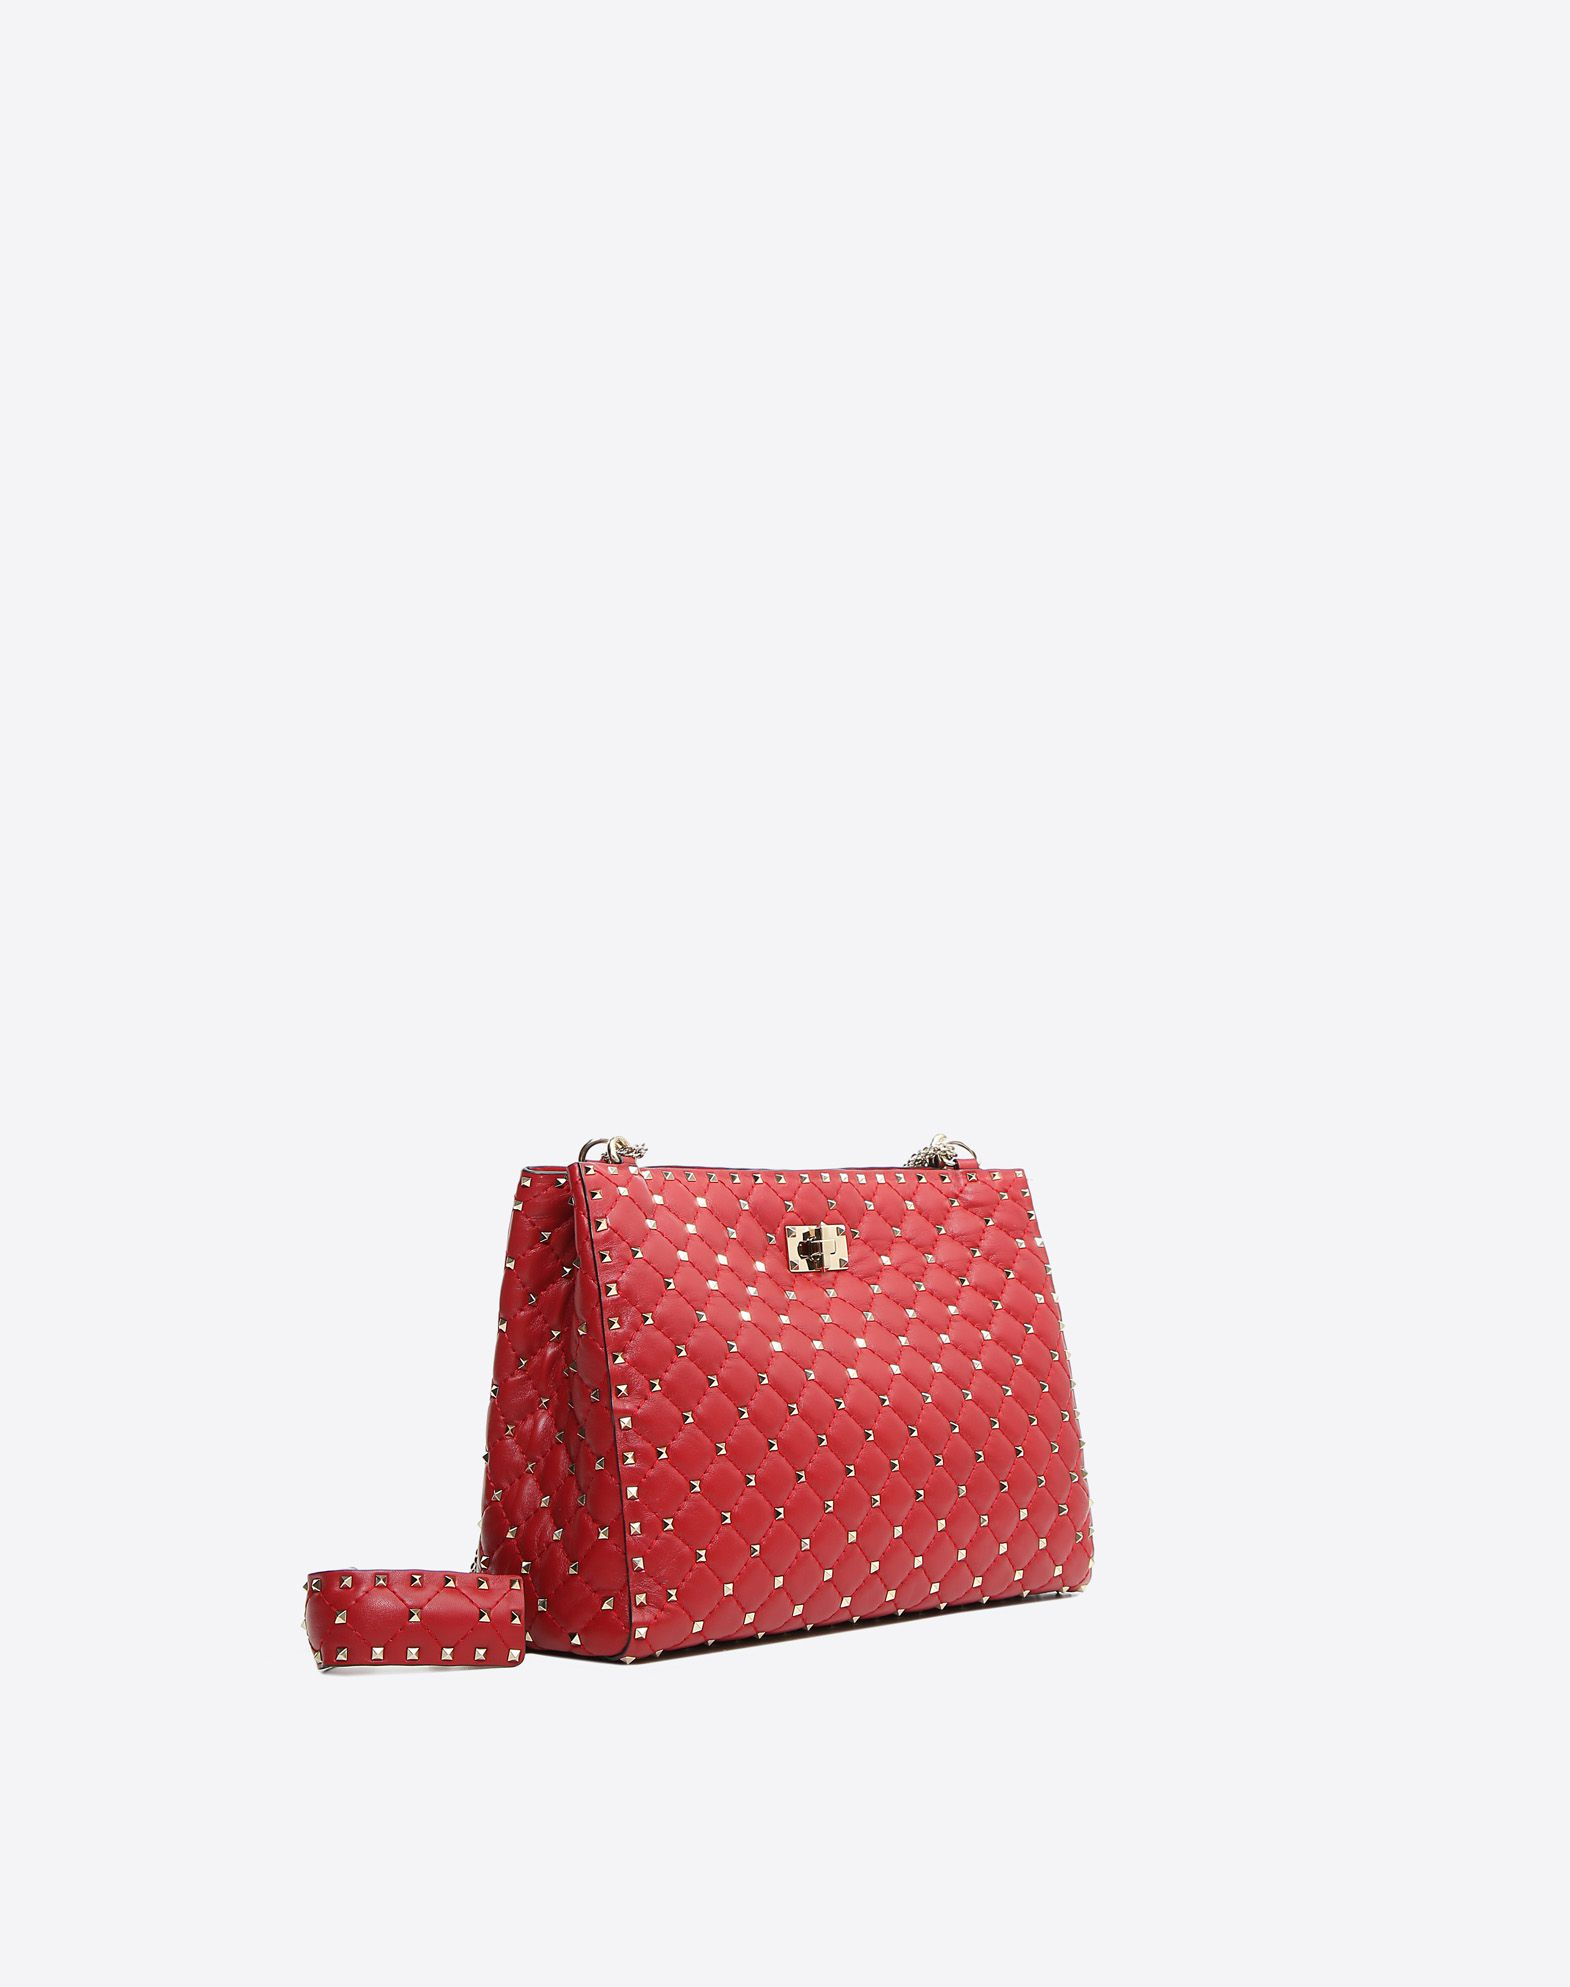 Valentino Garavani The Rockstud Spike Quilted Leather Wallet - Red Valentino 4M9b3Tg4TJ